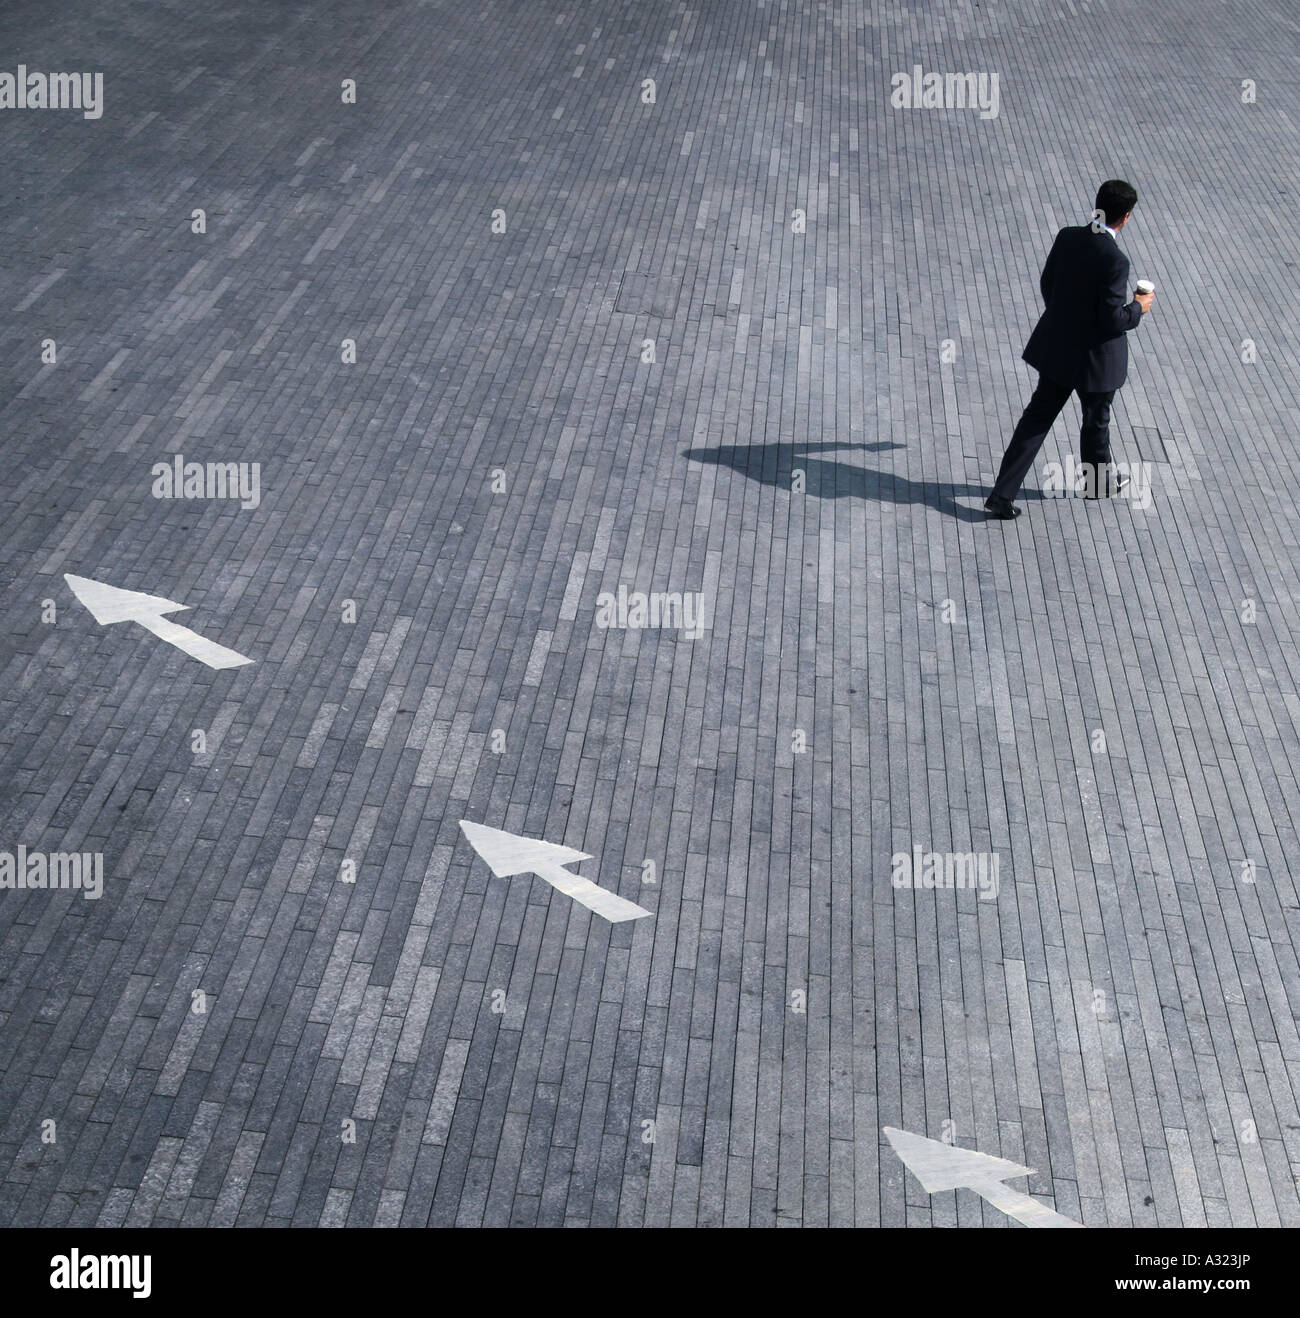 business concept of a man walking in the opposite direction of arrows - Stock Image